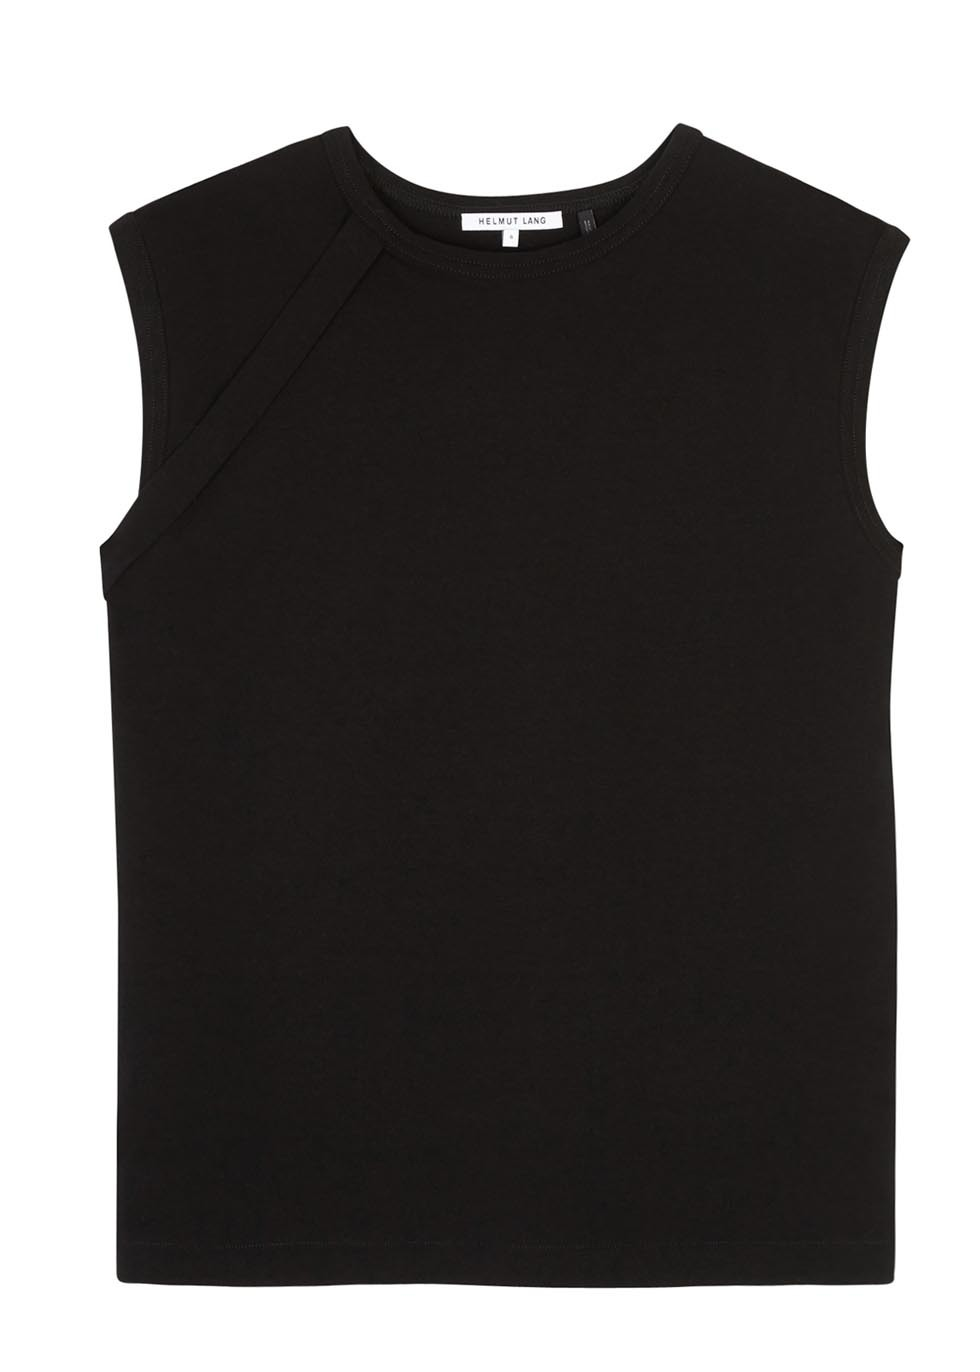 Vintage Black Cotton Top - neckline: round neck; pattern: plain; sleeve style: sleeveless; predominant colour: black; occasions: casual; length: standard; style: top; fibres: cotton - 100%; fit: straight cut; sleeve length: sleeveless; pattern type: fabric; texture group: jersey - stretchy/drapey; season: s/s 2016